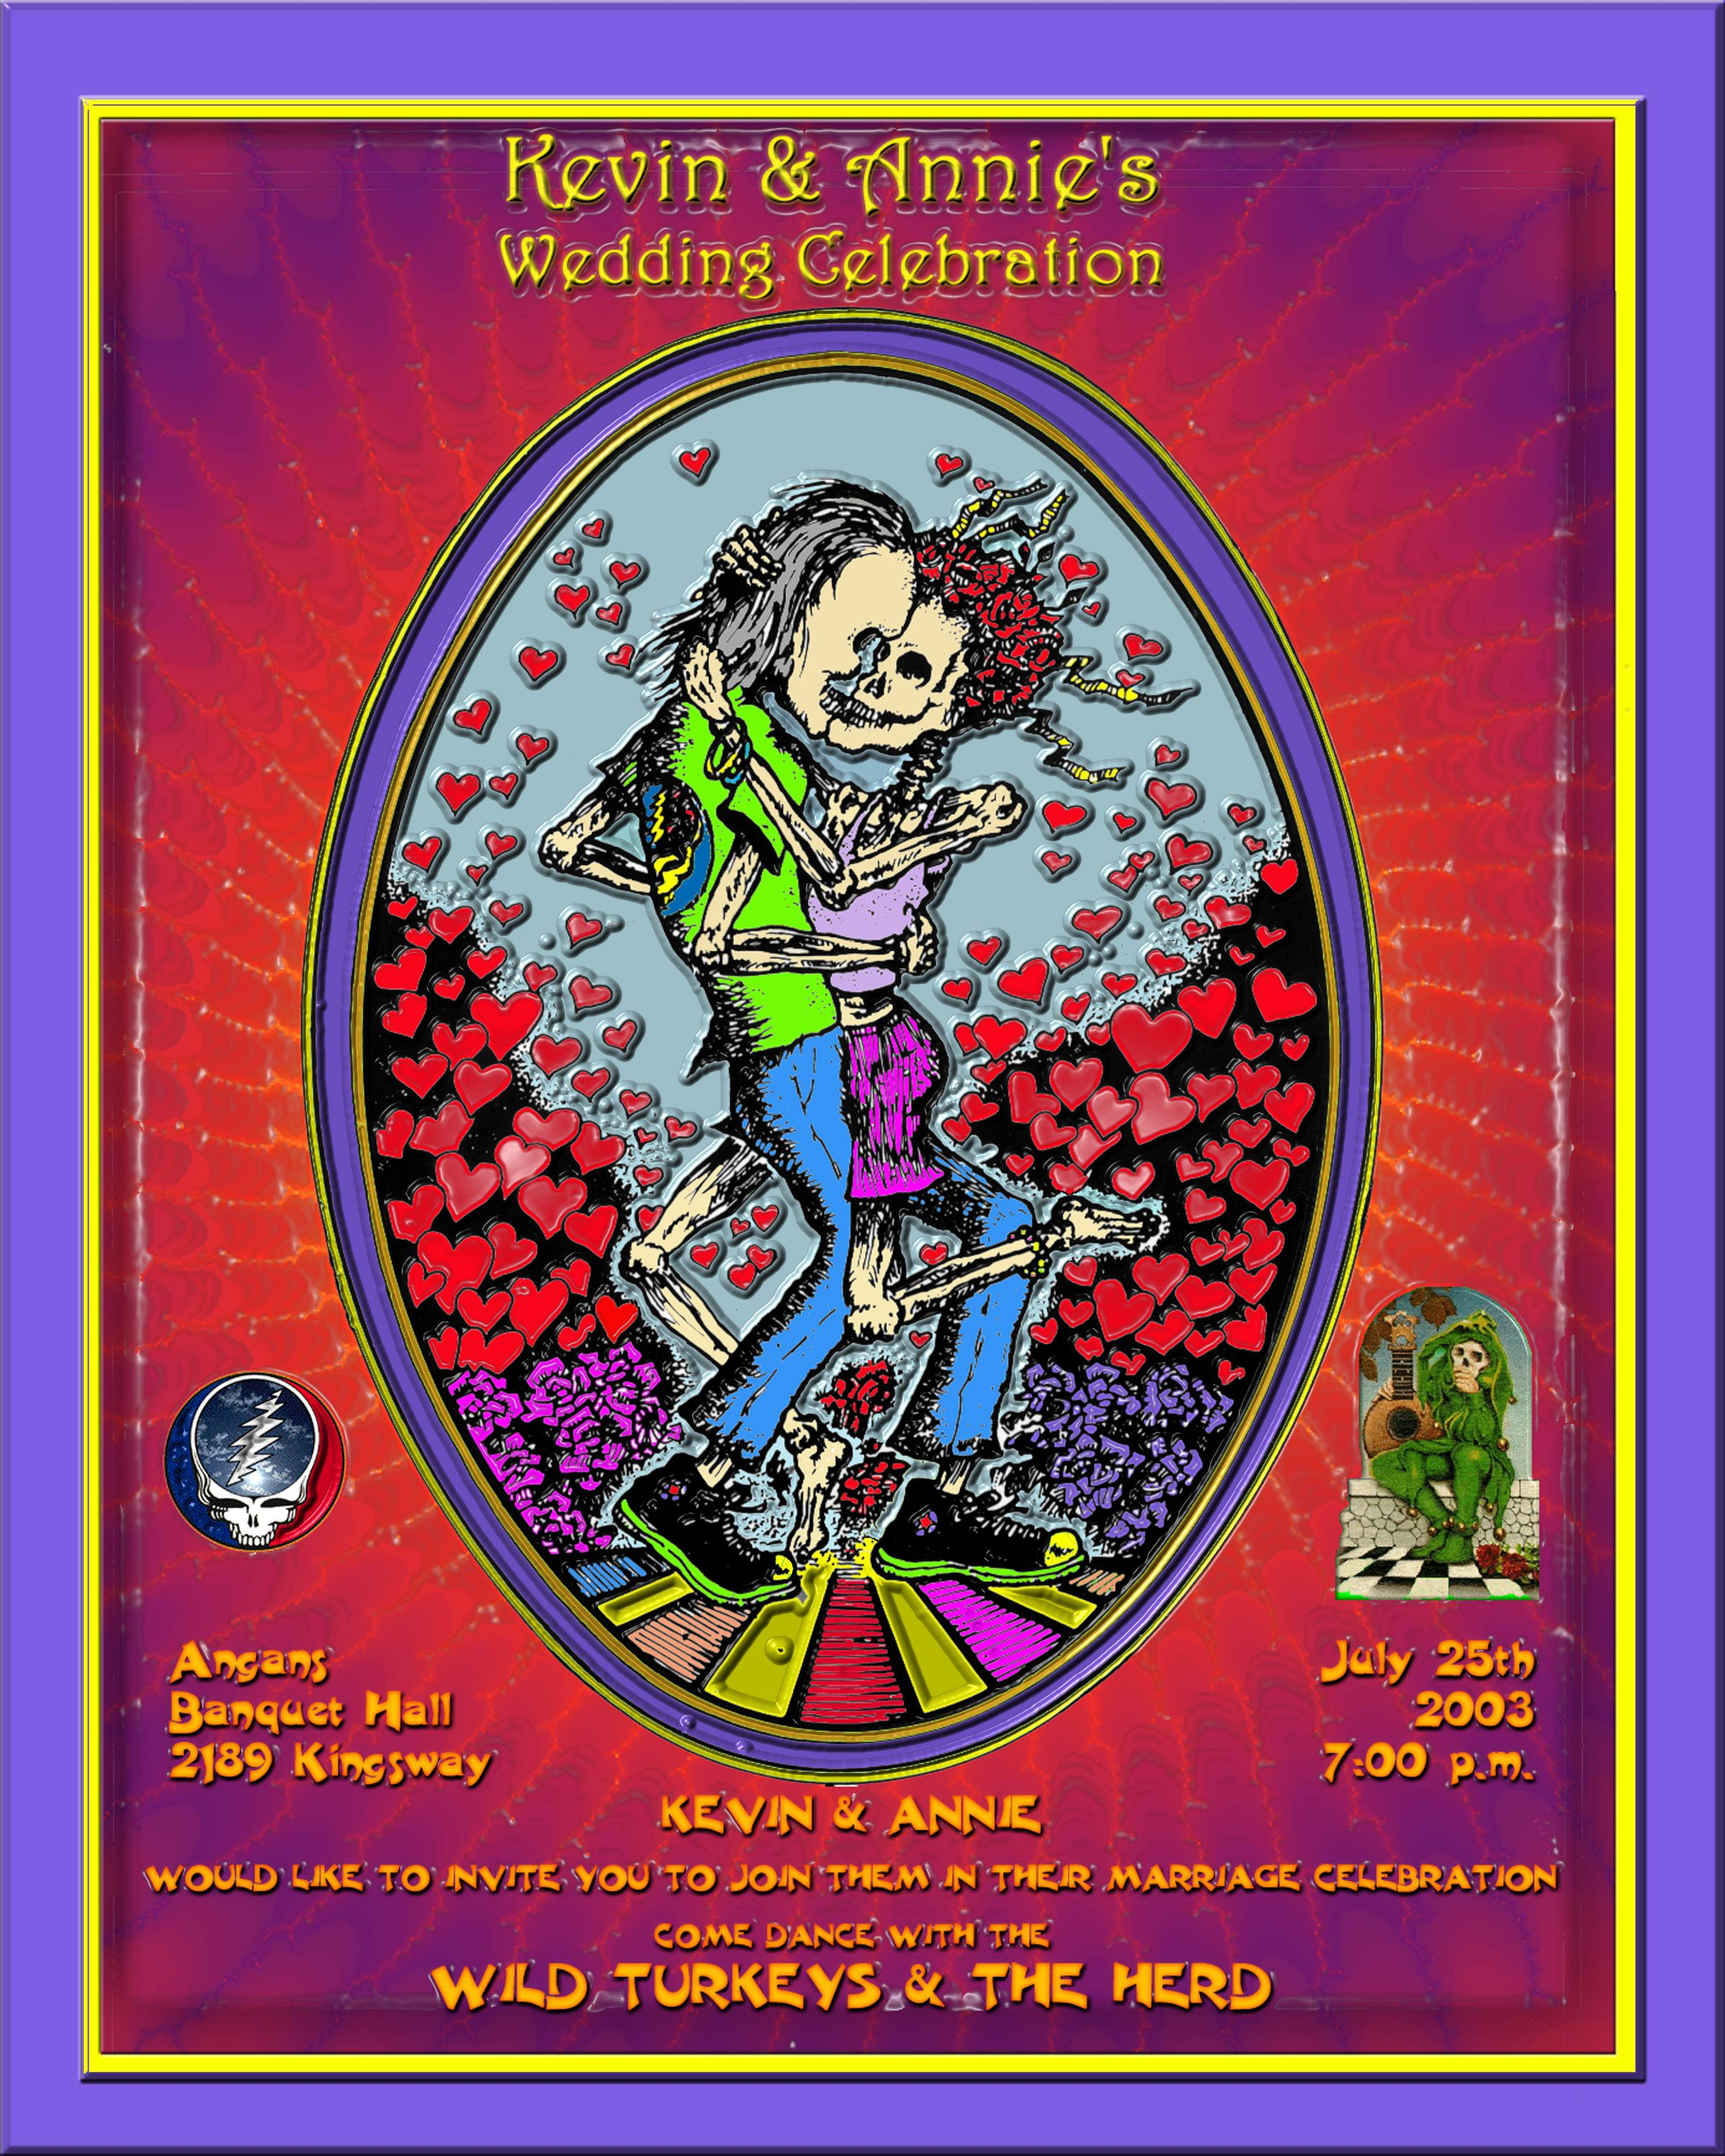 Grateful Dead Wedding Invitation To Love Phil Lesh And Friends Grateful Dead Jerry Garcia Band